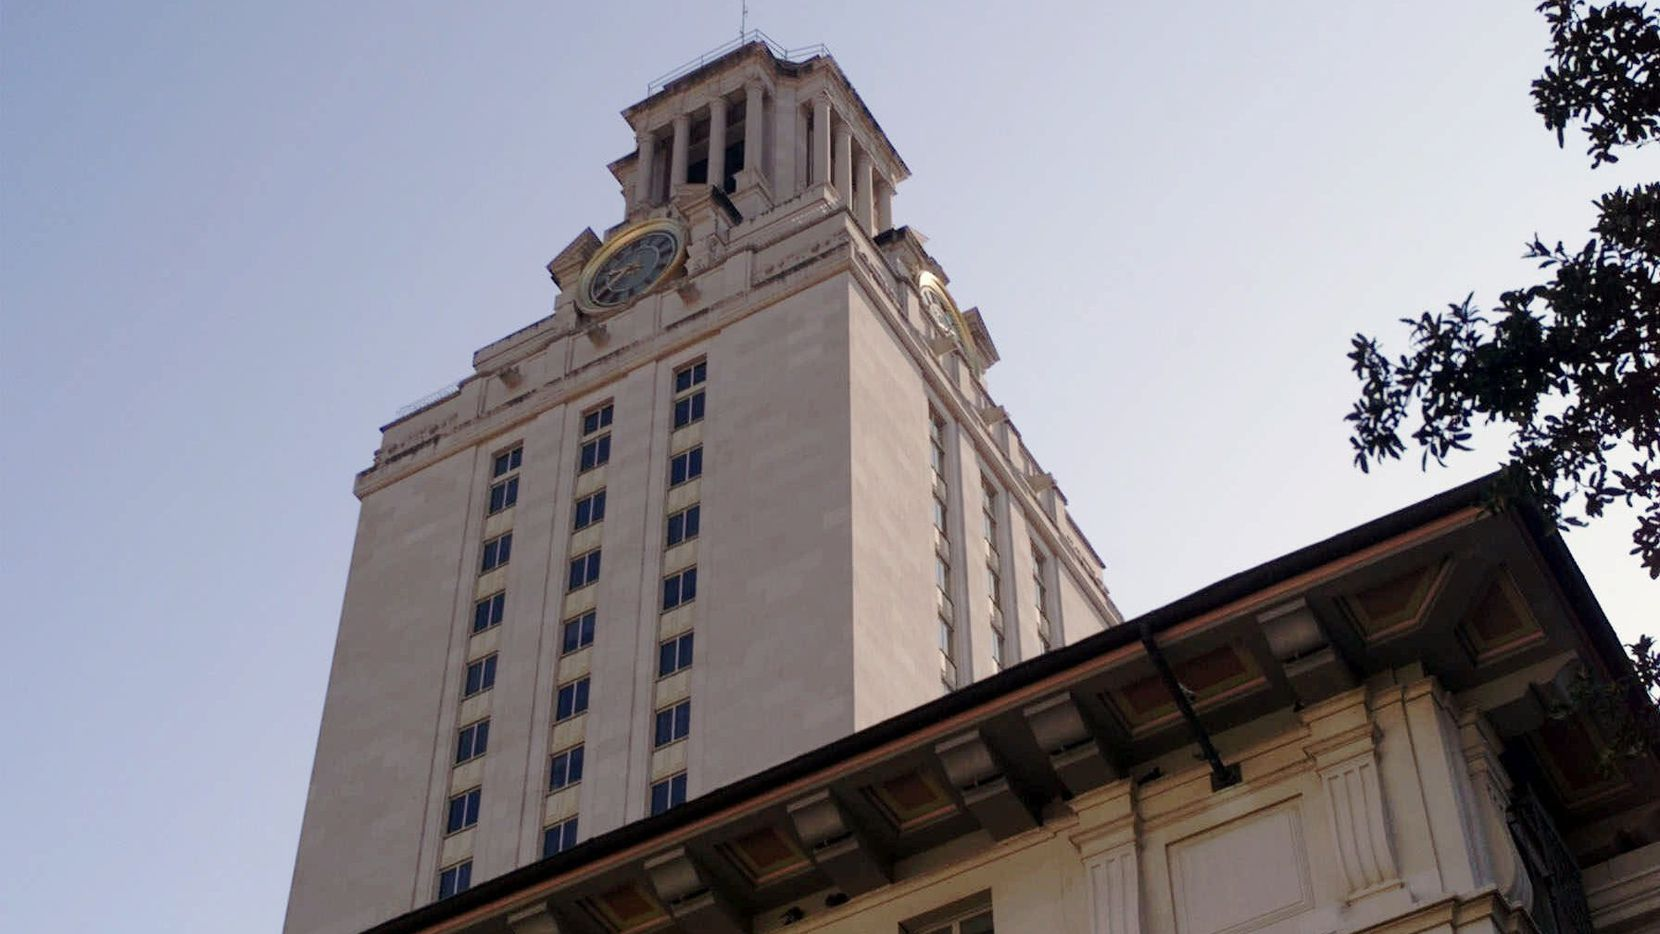 The Main Bell Tower at the University of Texas.